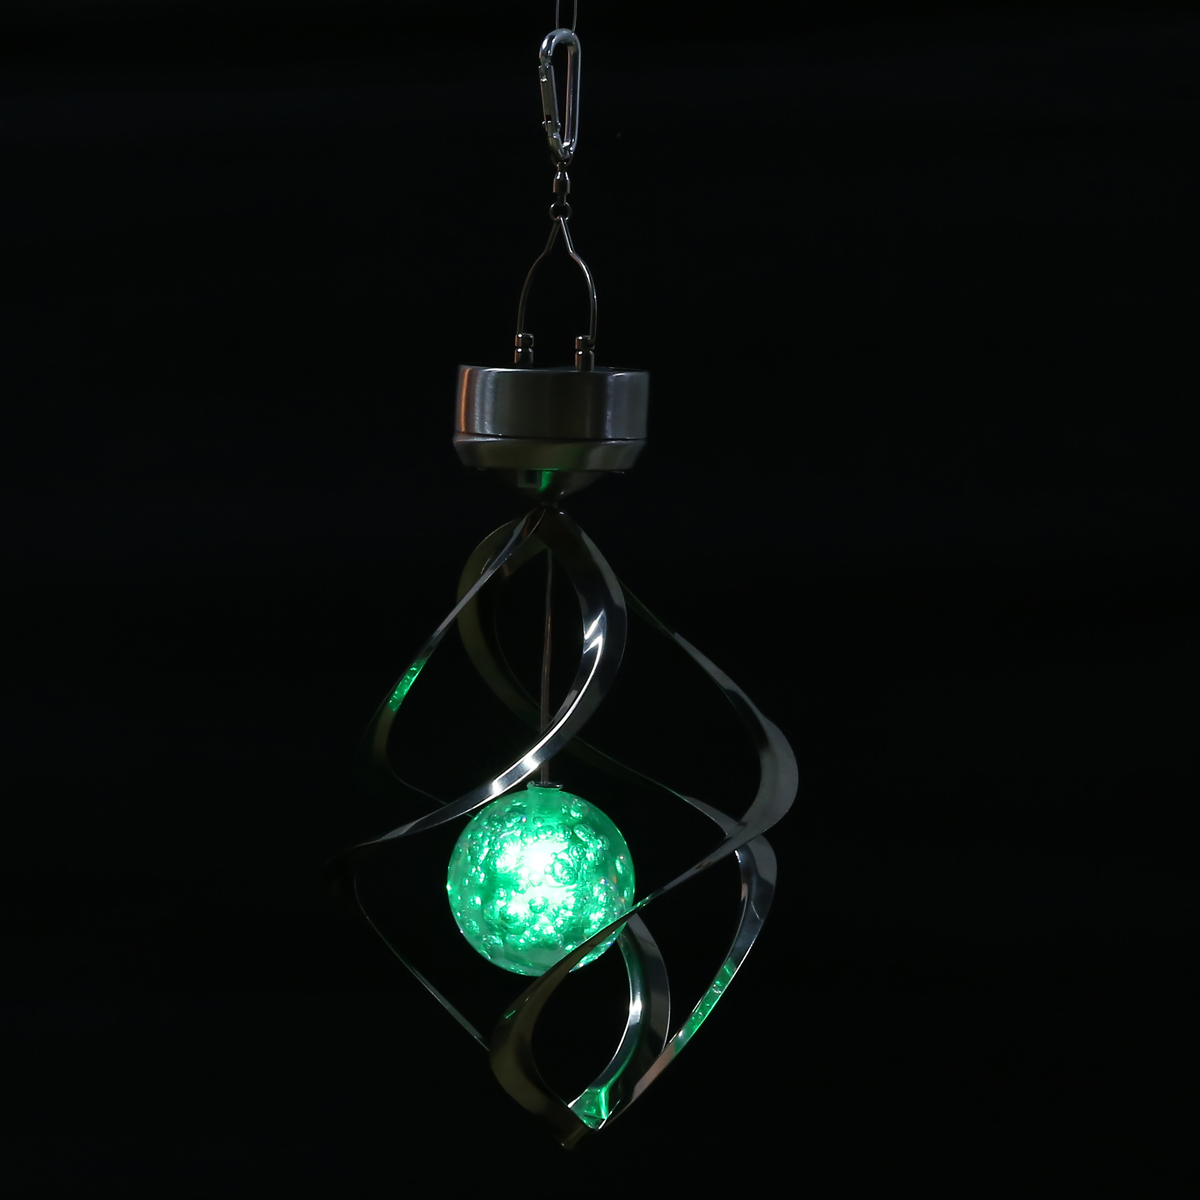 Solar Wind Chime LED Color Changing Hanging Light Decorative Solar Powered Wind Chime Spinner Light For Home Garden Decor